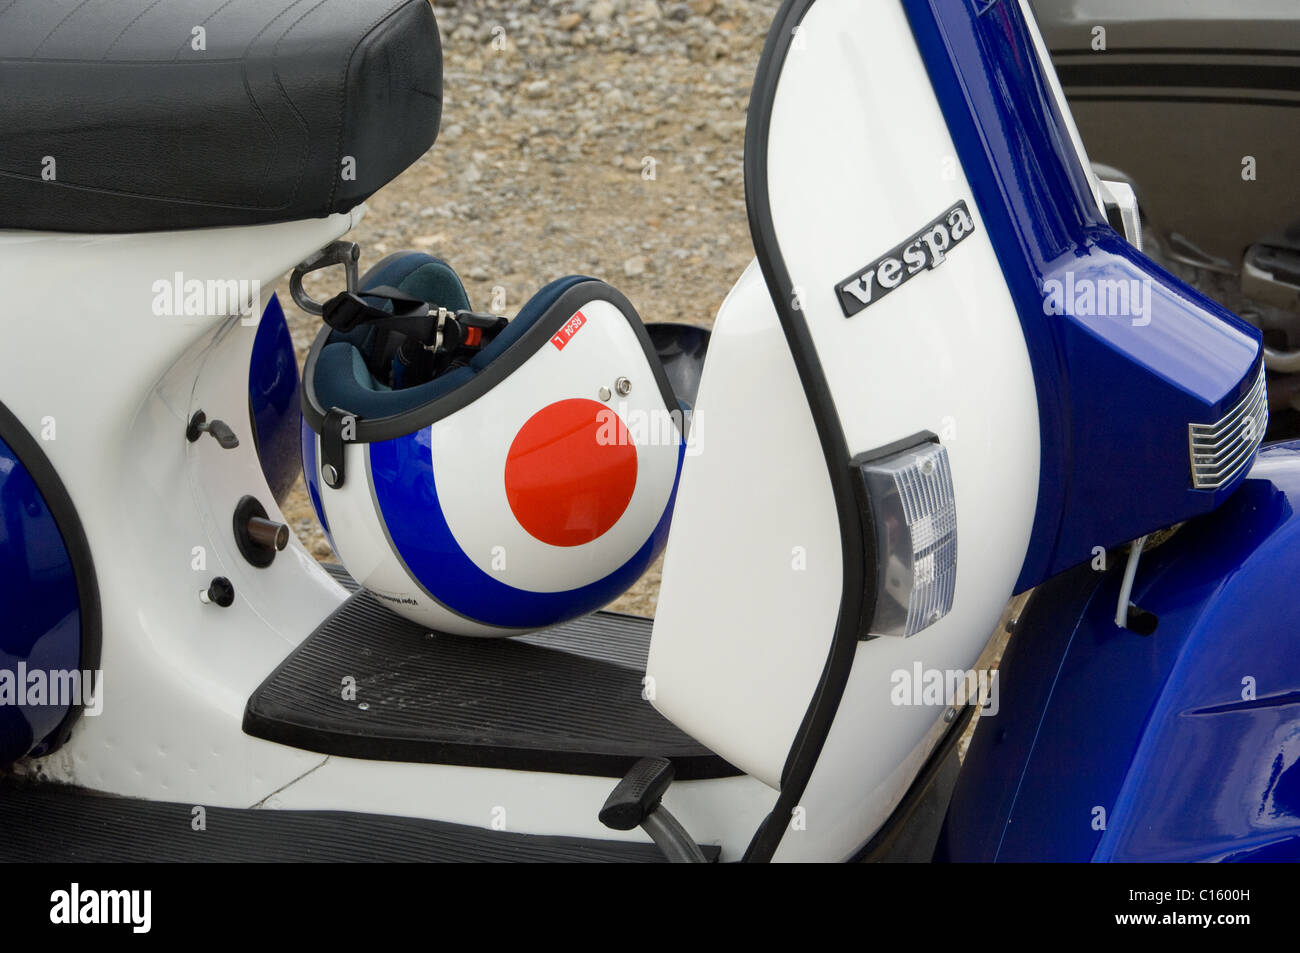 Blue and white Vespa scooter & helmet - Stock Image